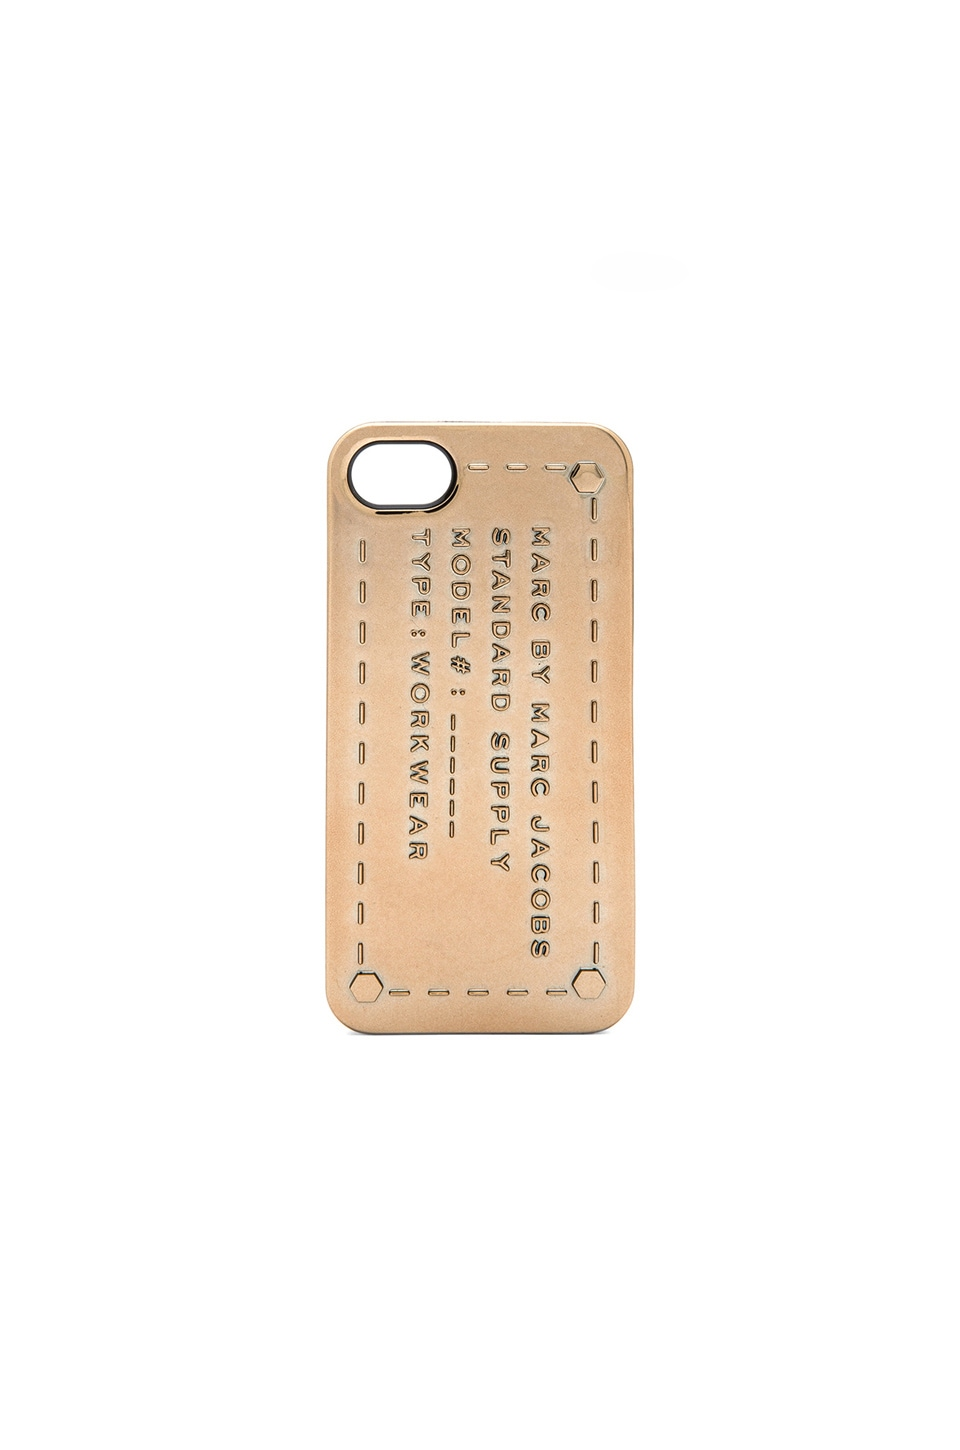 Marc by Marc Jacobs Standard Supply iPhone 6 Case in Metallic Rose Gold